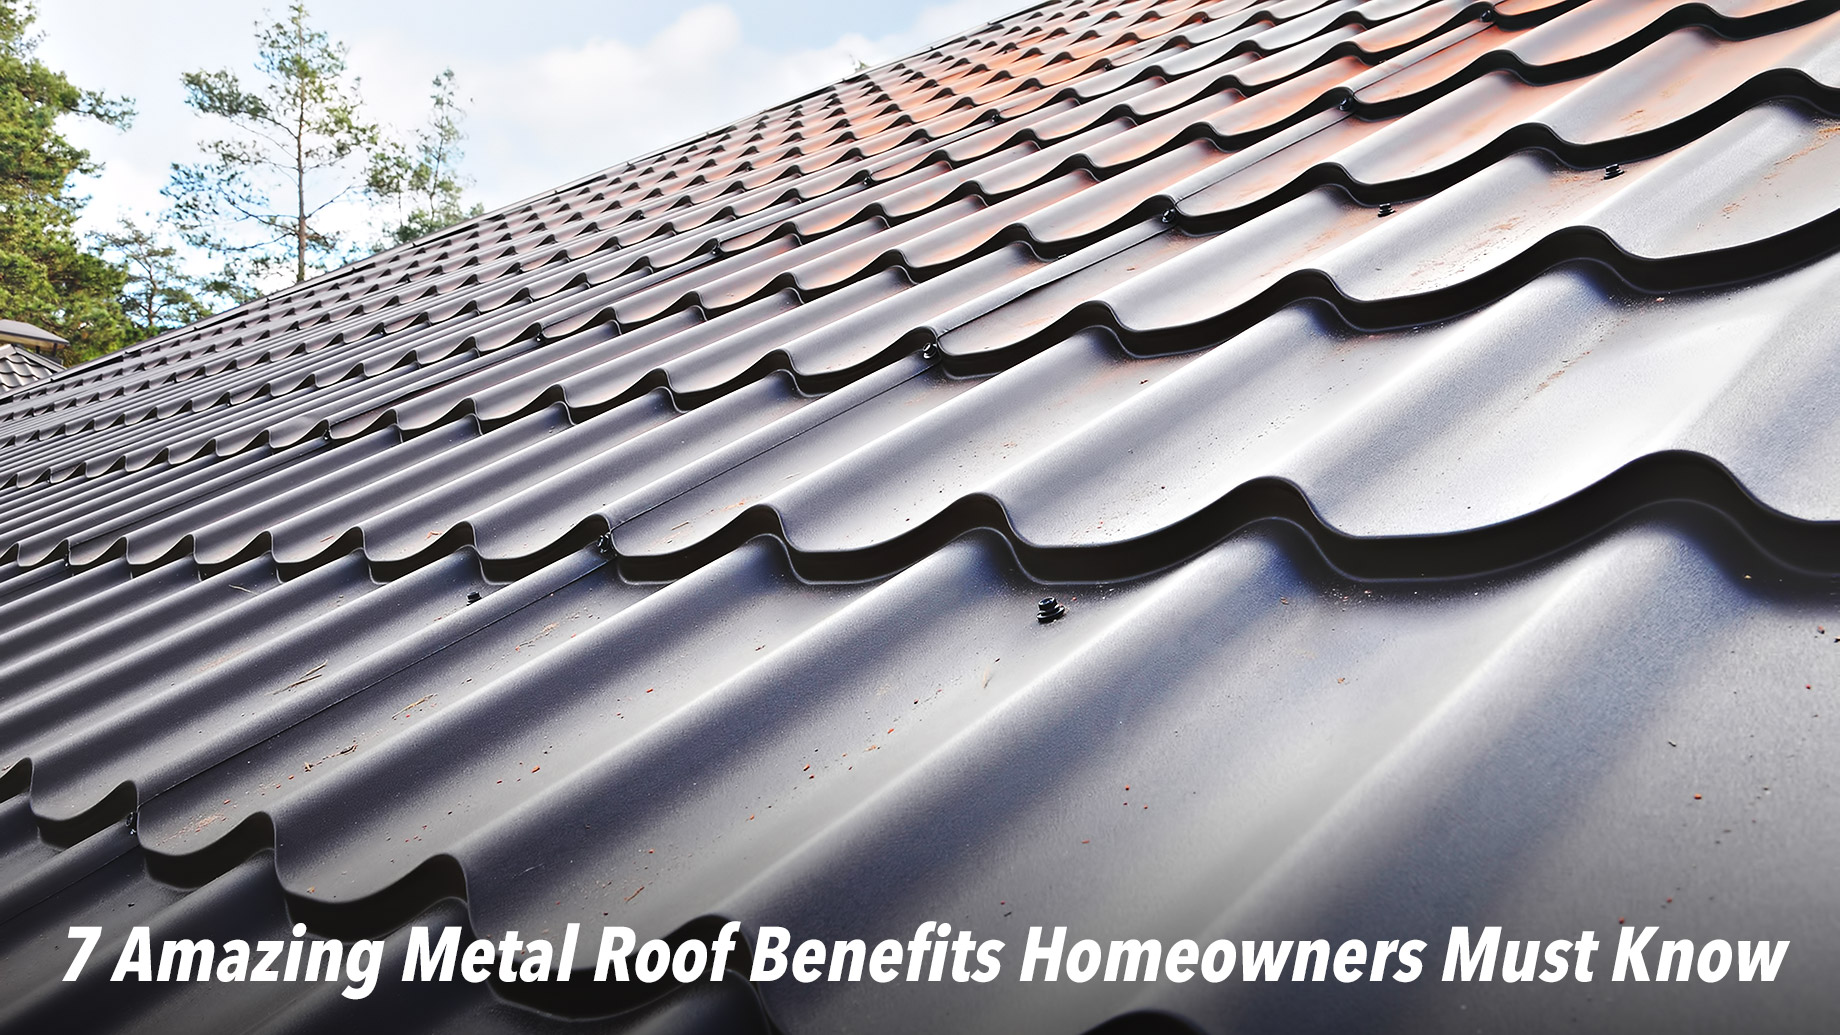 7 Amazing Metal Roof Benefits Homeowners Must Know